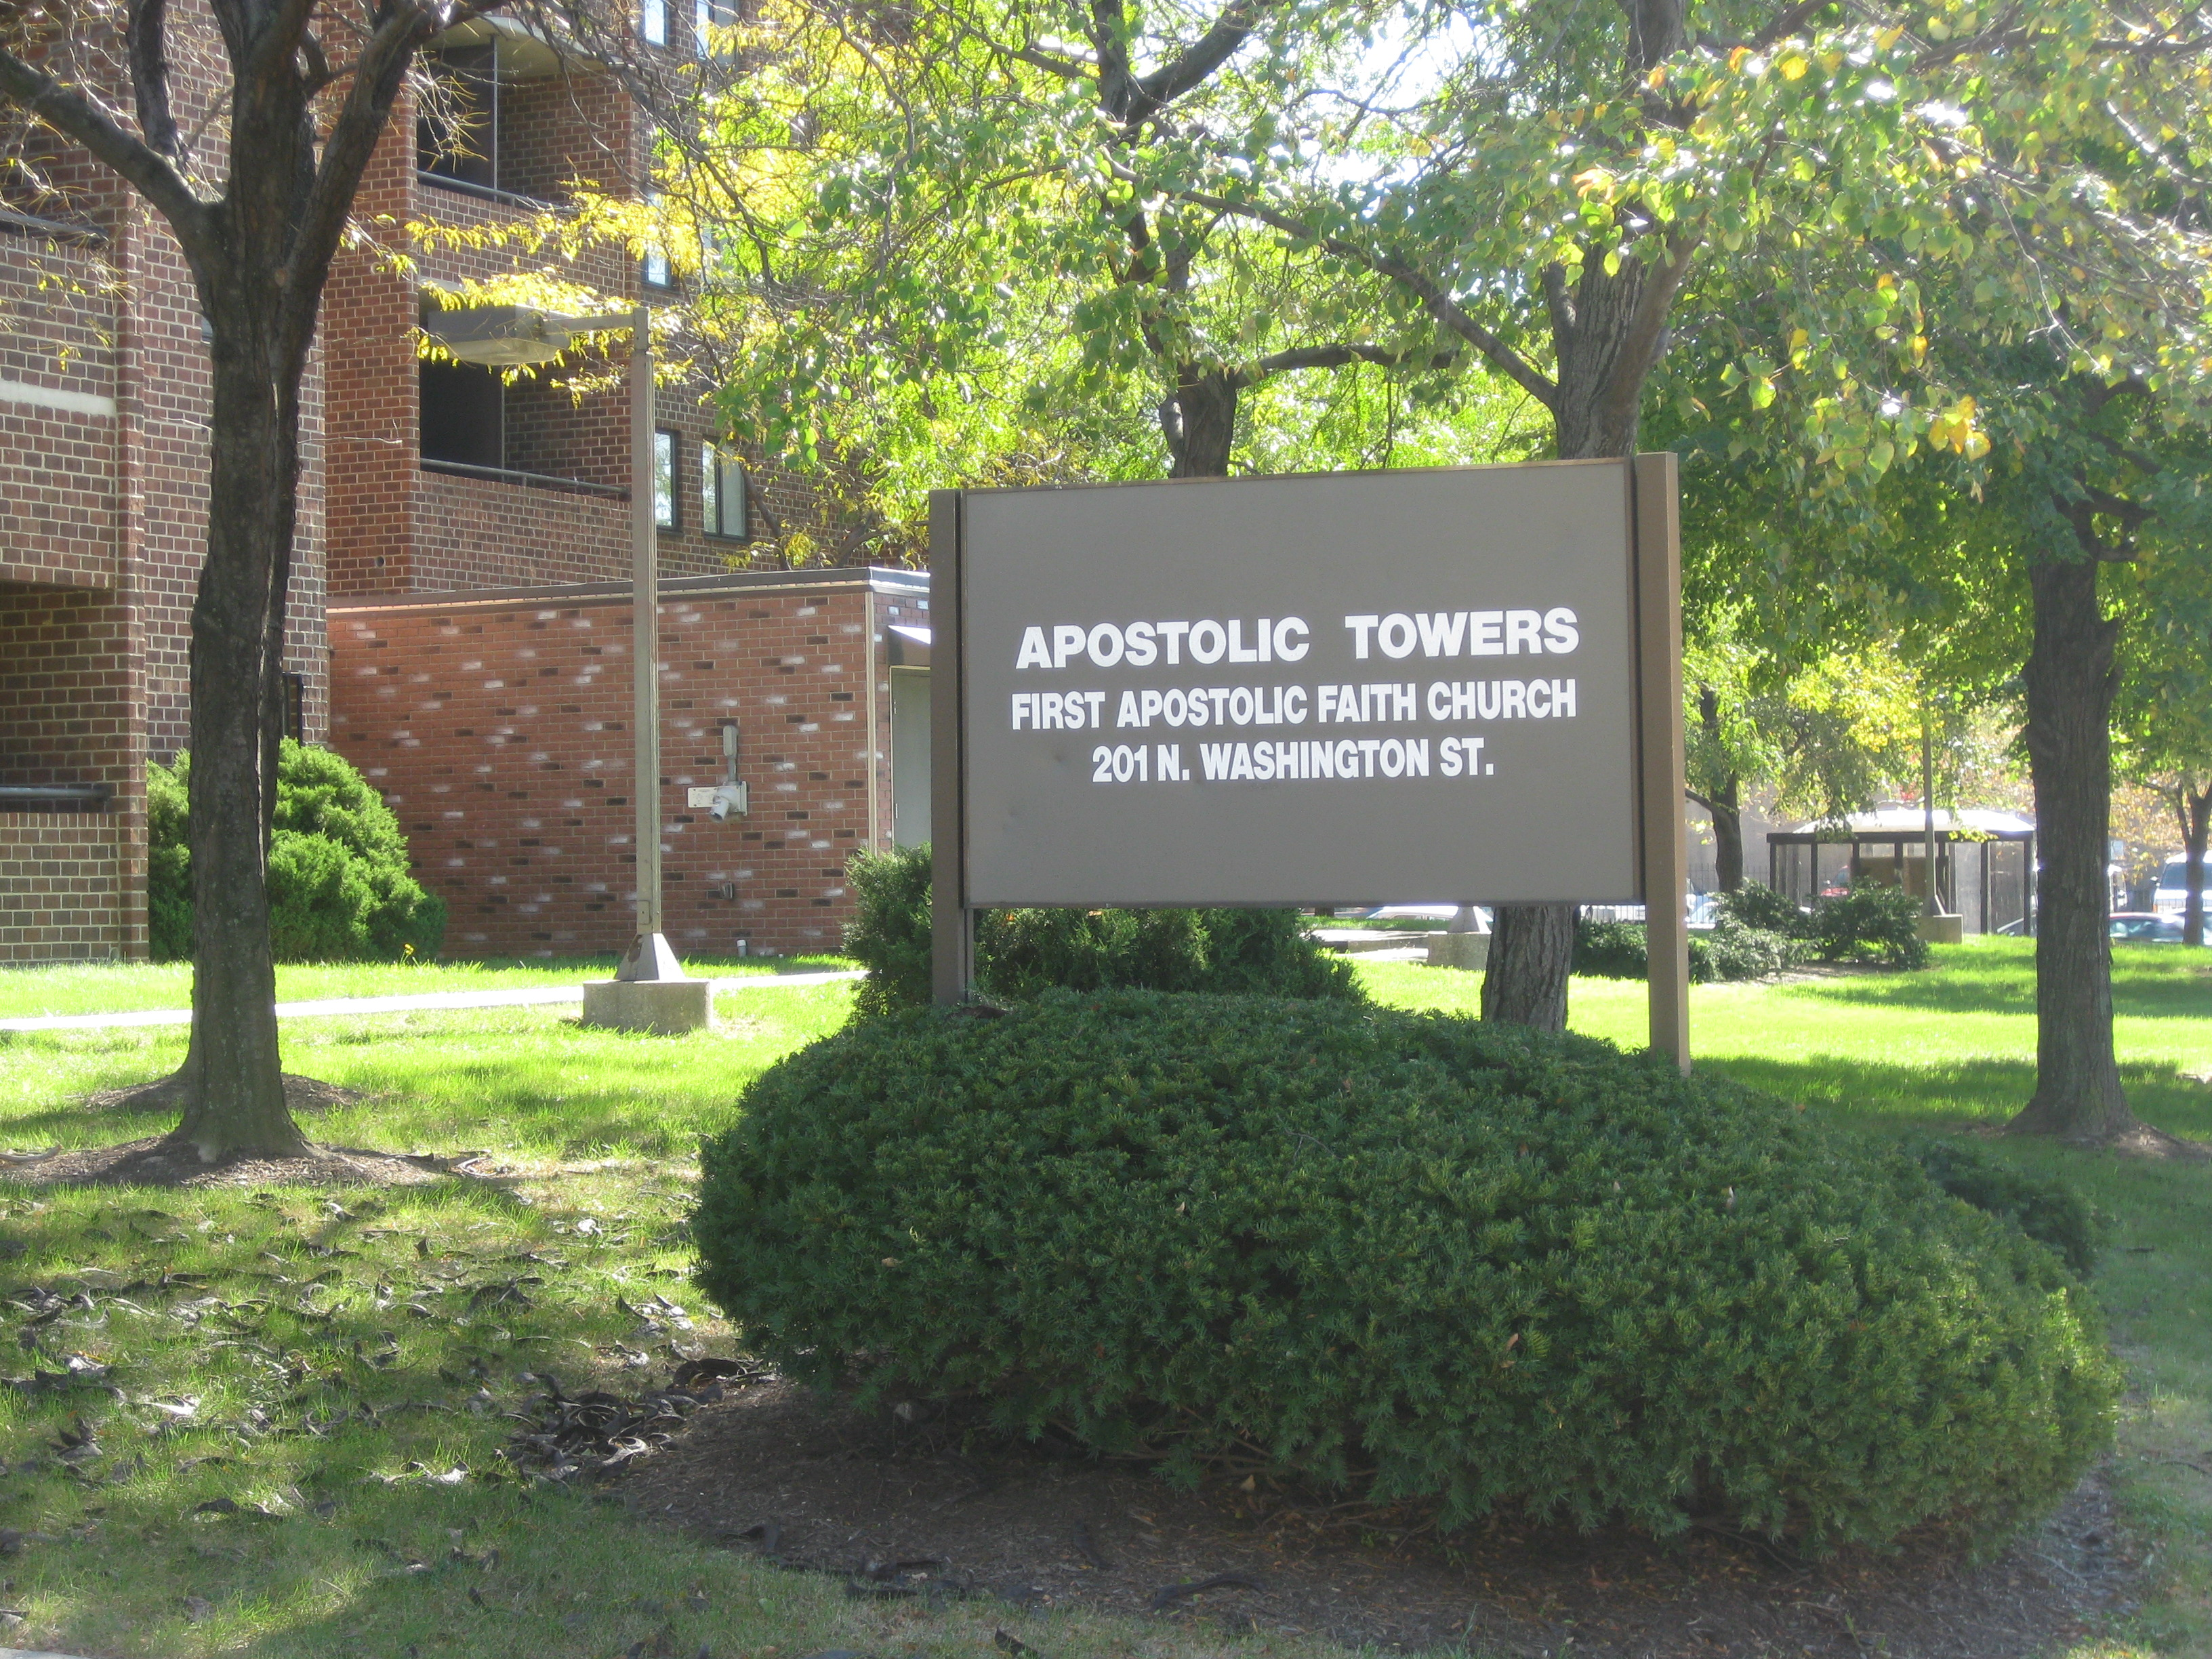 Apostolic Towers